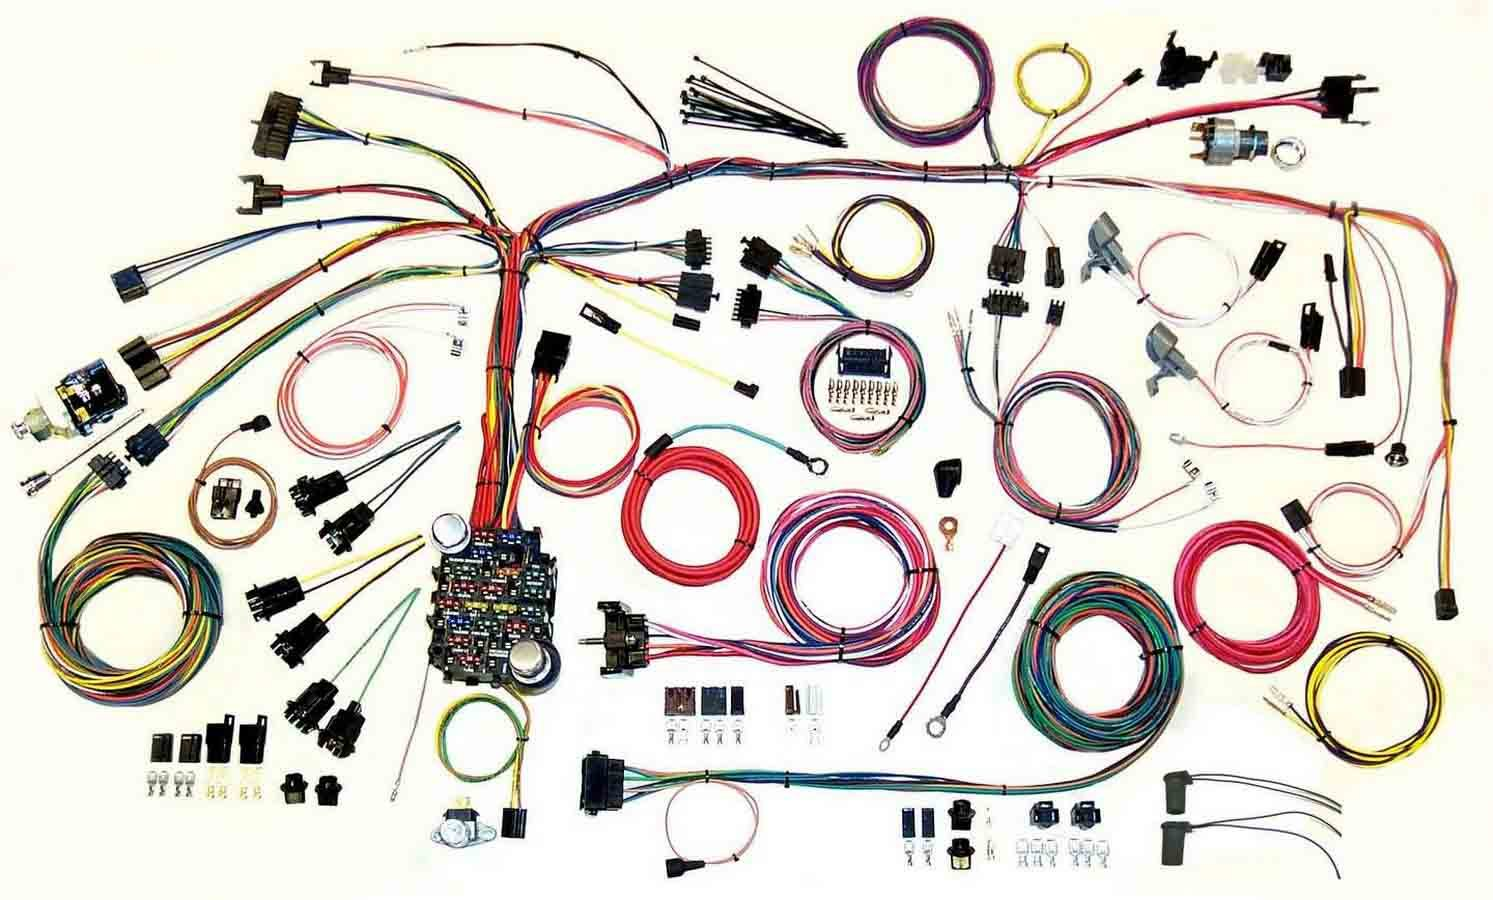 American Autowire 500886 Car Wiring Harness, Classic Update, Complete, Firebird 1967-68, Kit